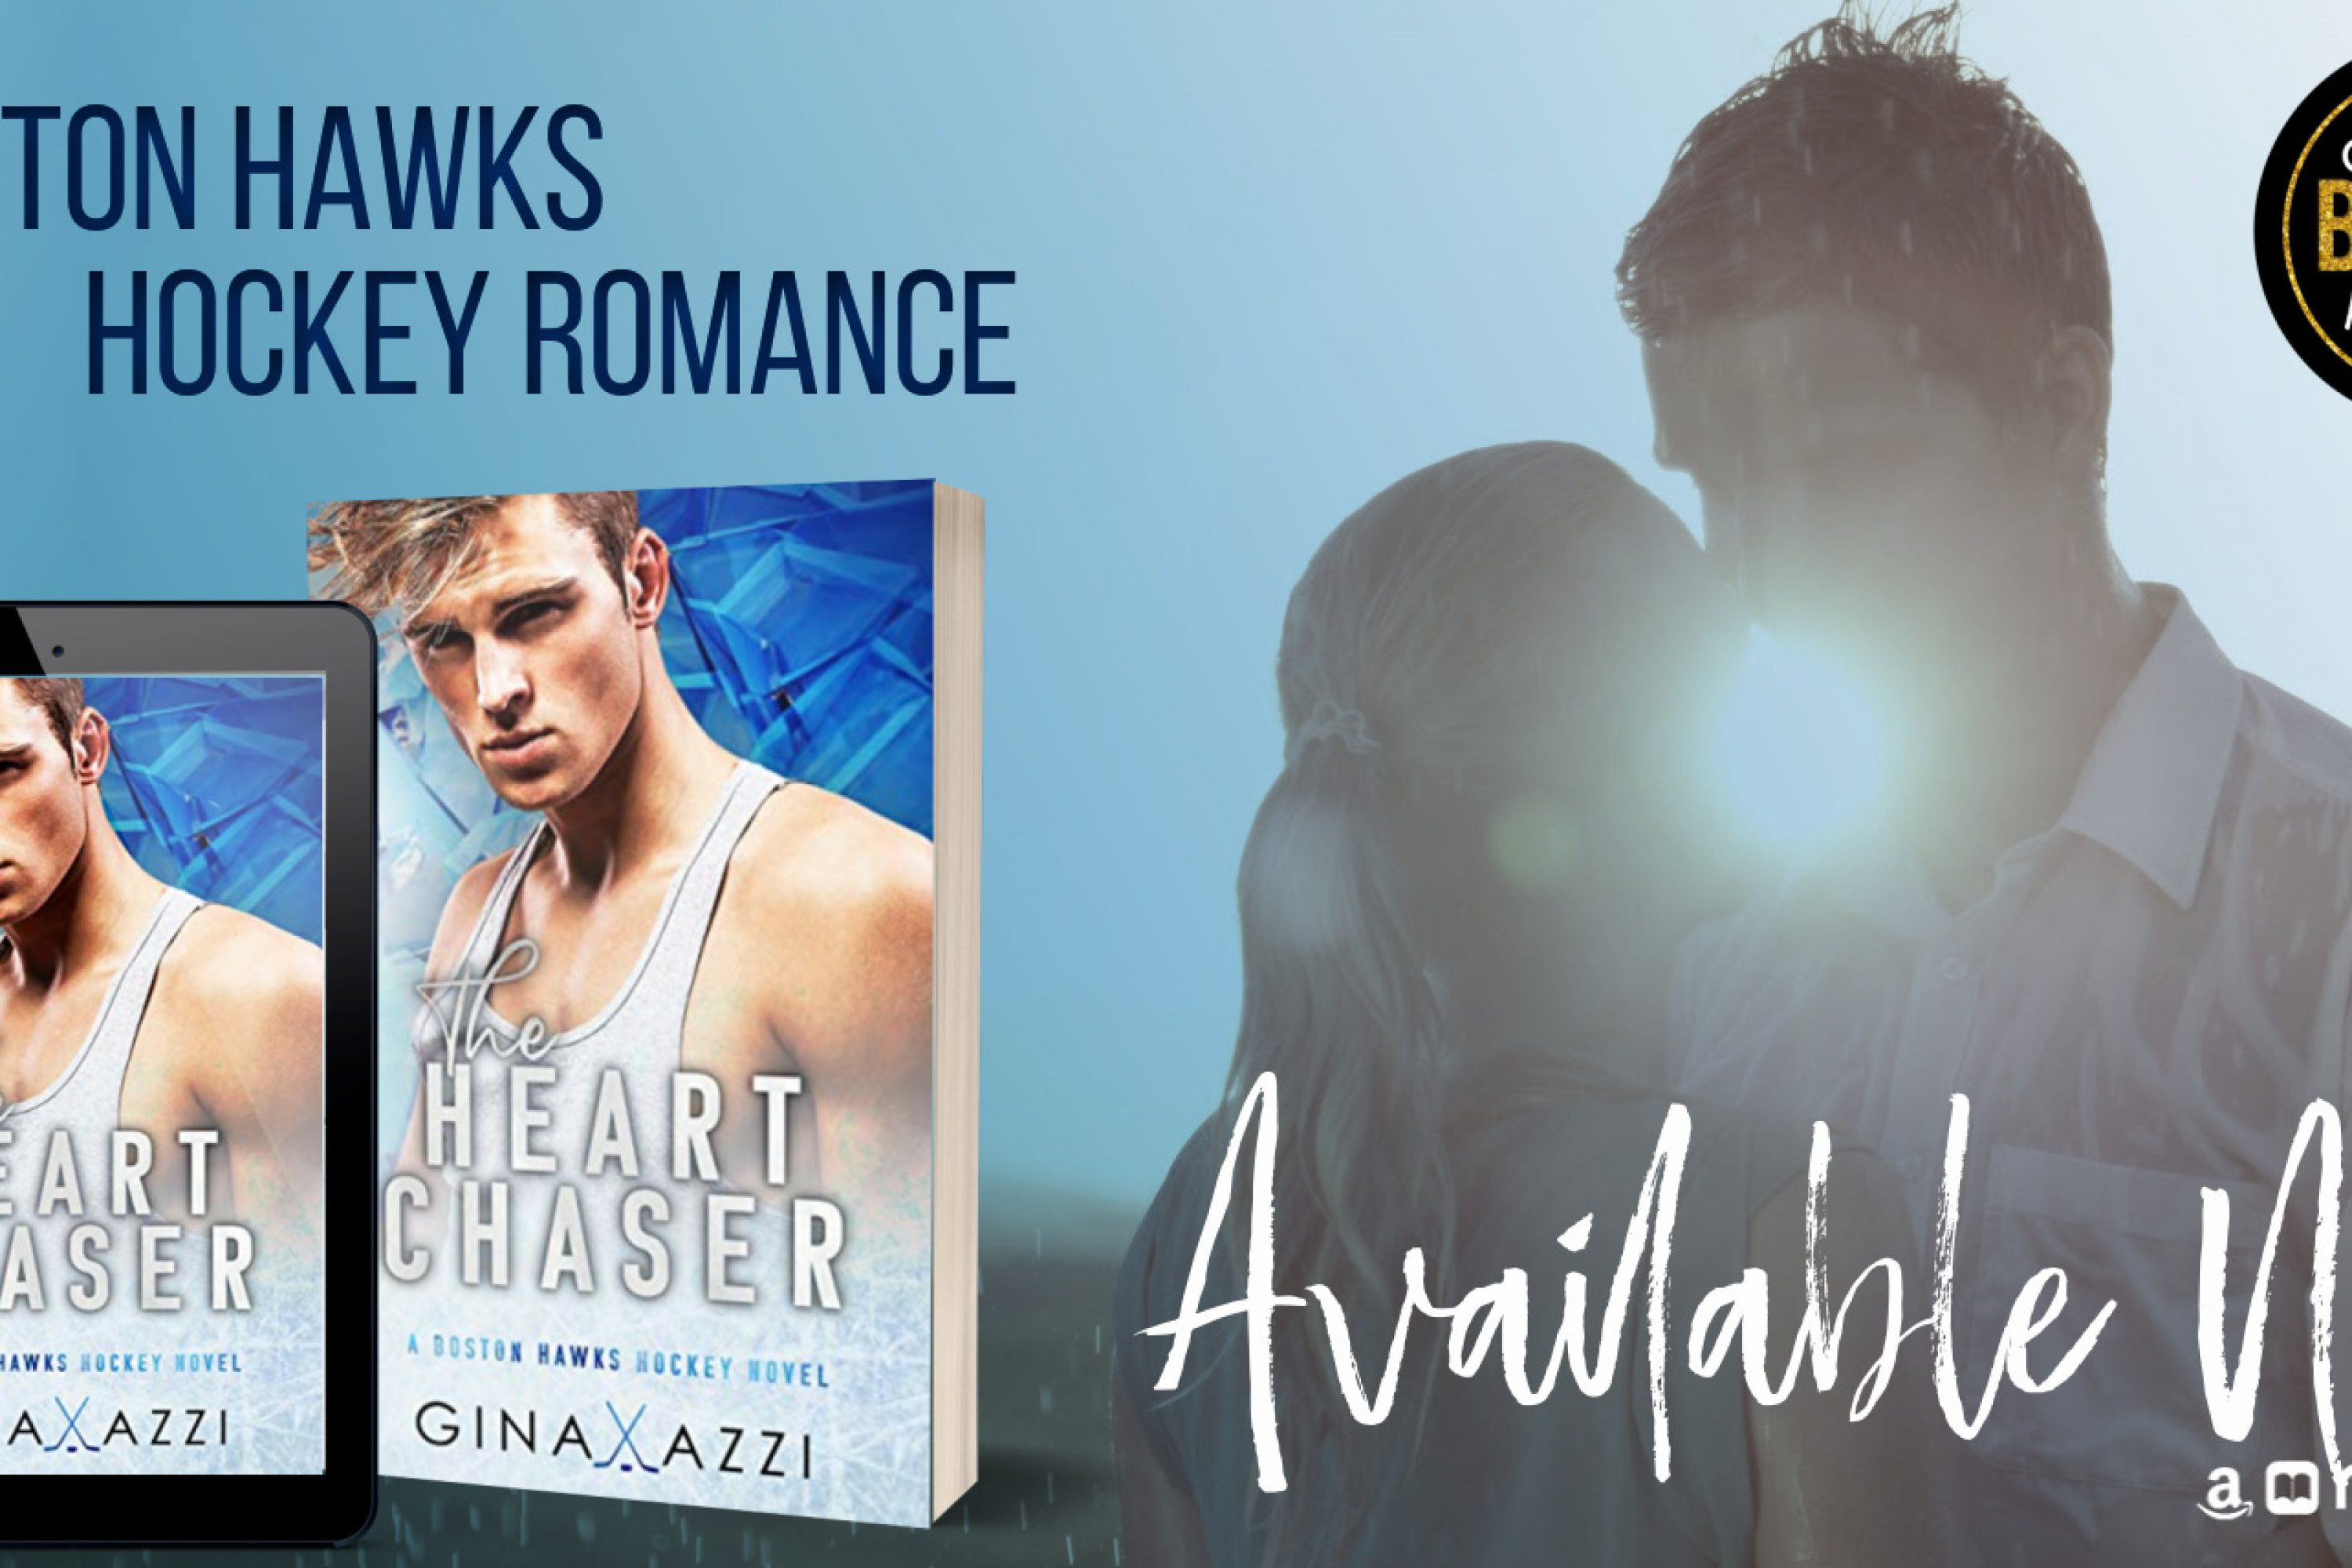 Release Blitz: The Heart Chaser by Gina Azzi